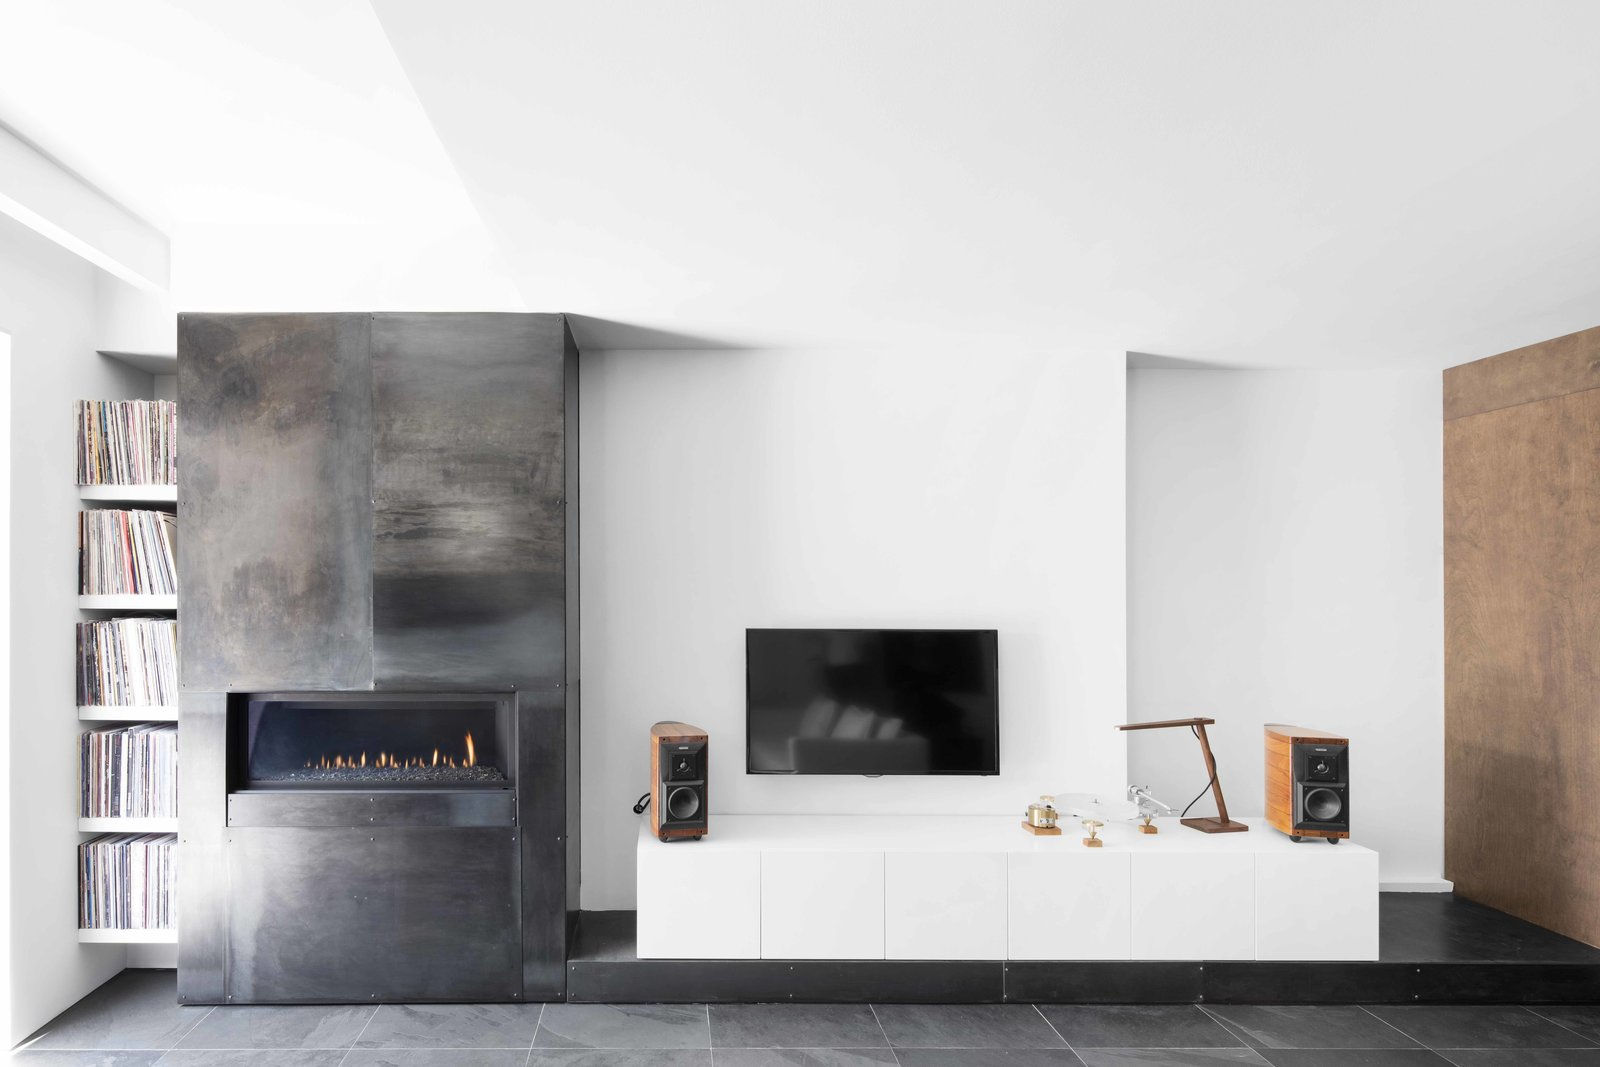 The communication between interior and exterior is unmistakable. The polished steel that surrounds the fireplace and the concrete floor's dark finish recall the home's exterior, while the contrasting stark white walls create a visual language as striking as the building's black facade. Tagged: Living Room, Gas Burning Fireplace, and Slate Floor.  Photo 3 of 7 in A Monochromatic Renovation for a 19th-Century Montreal Home